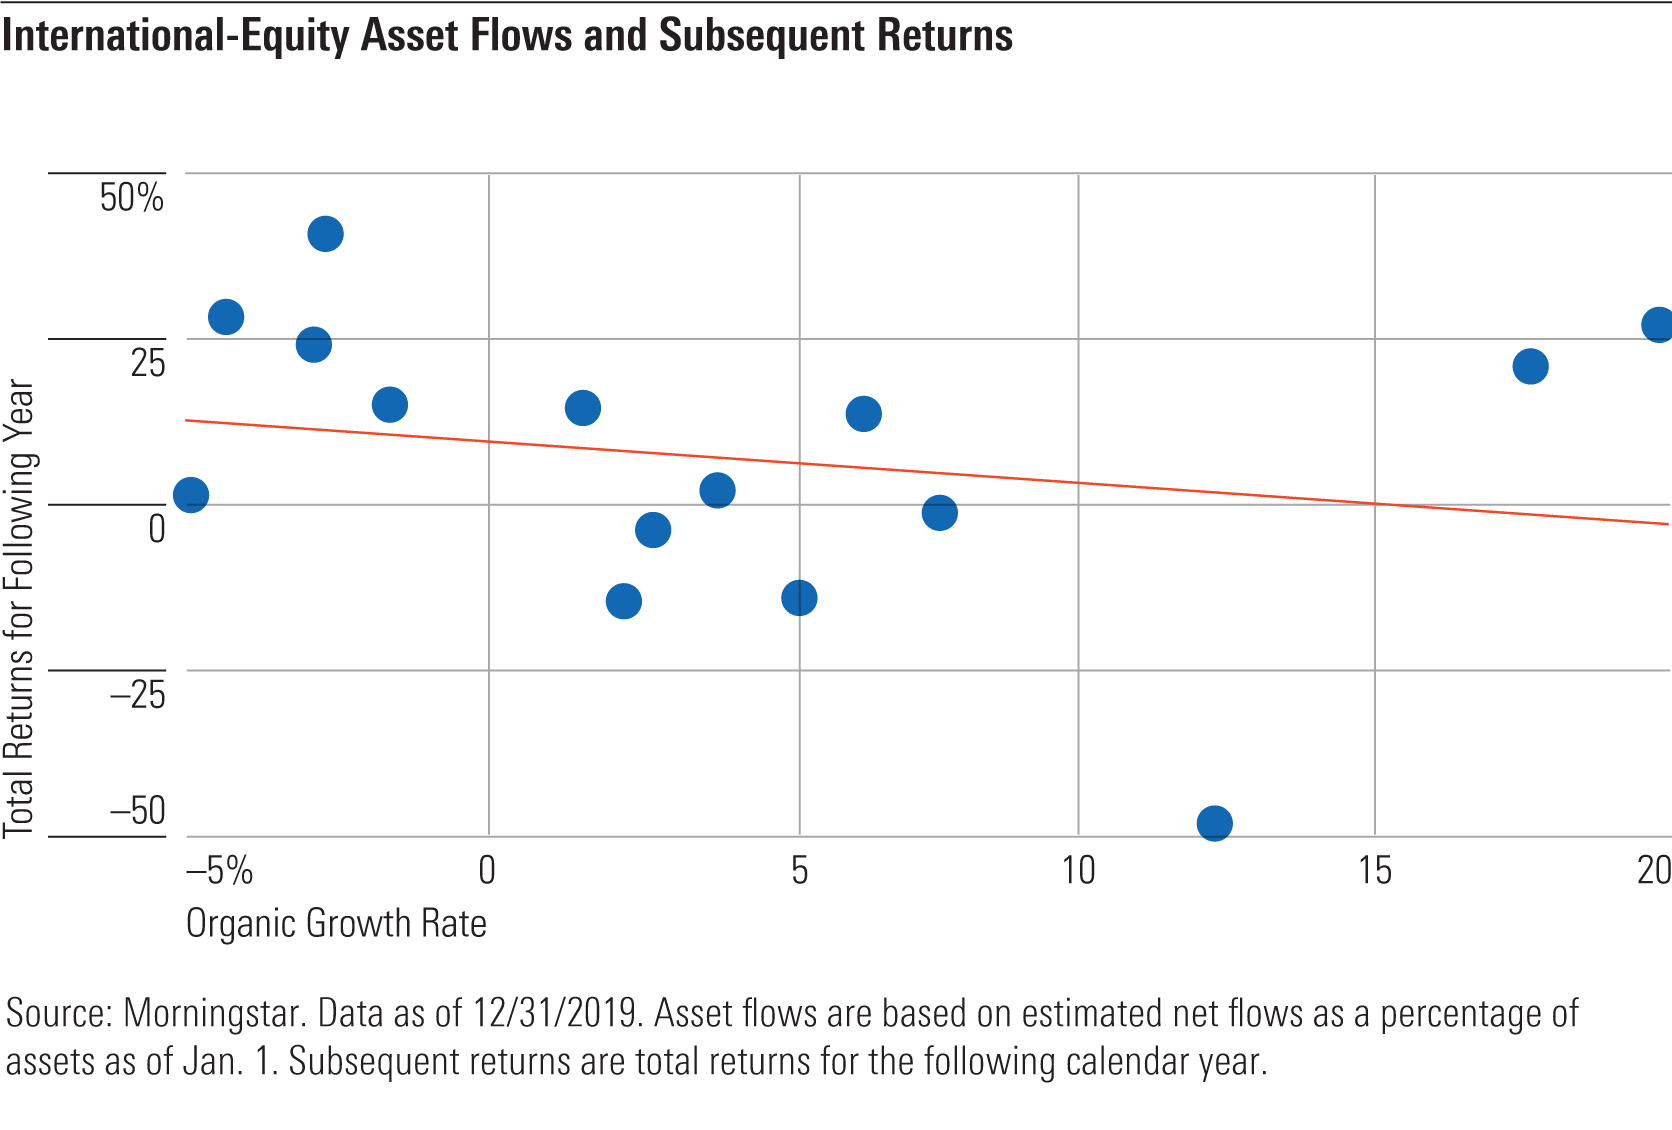 a chart showing intl-equity asset flows and subsequent returns